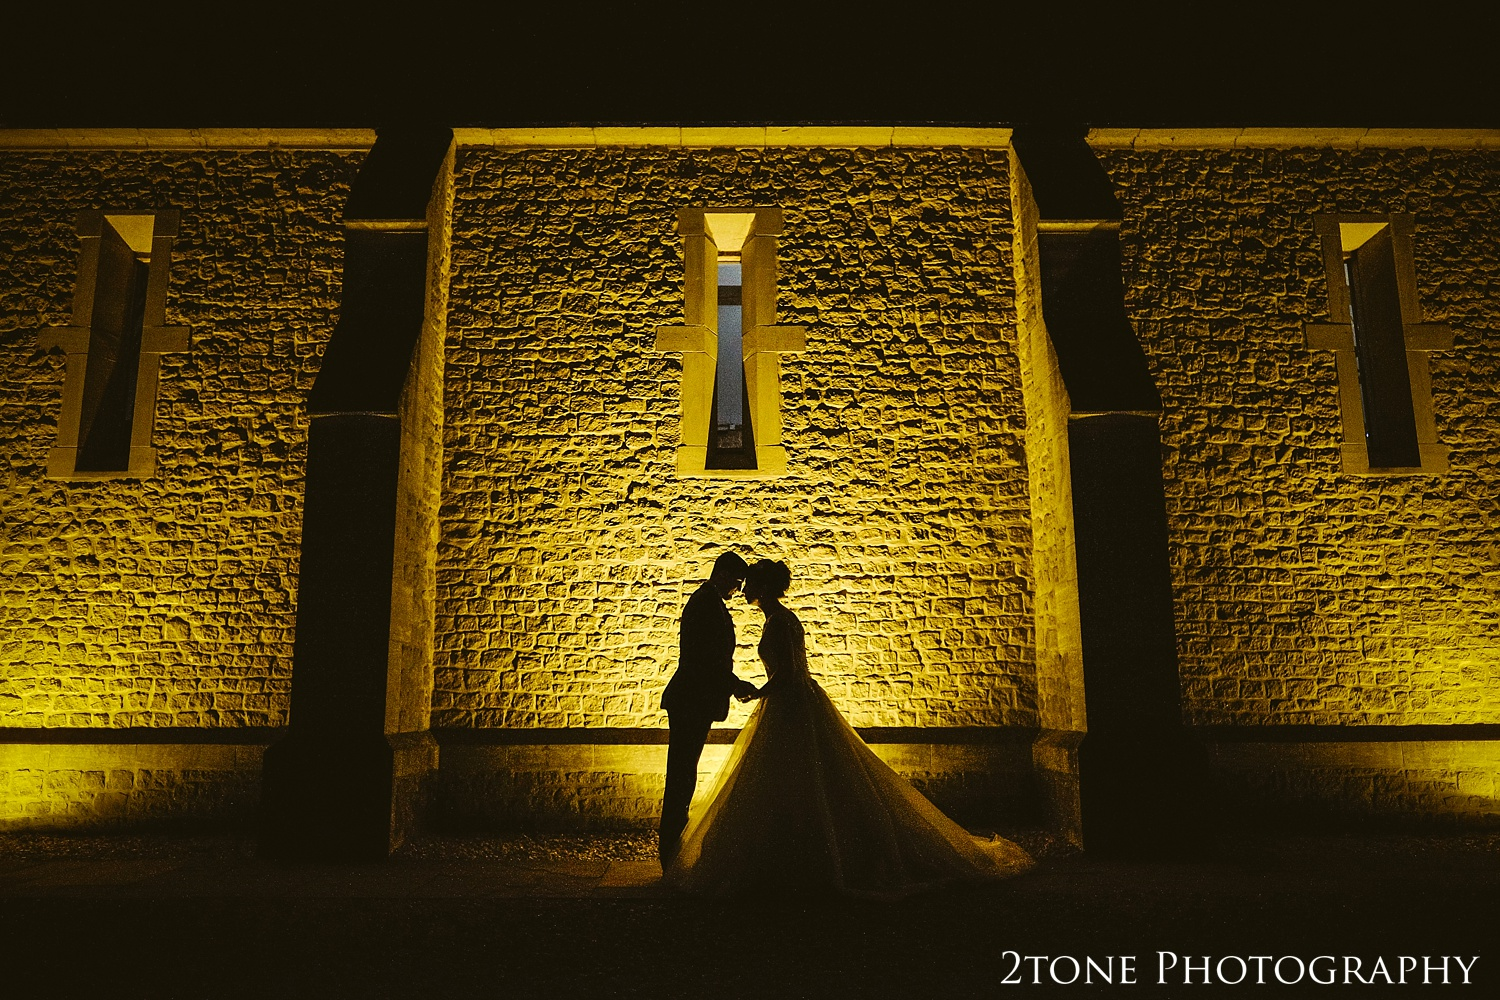 Creative wedding photography at Haselbury Mill and the Old Tythe Barn in Somerset by www.2tonephotography.co.uk